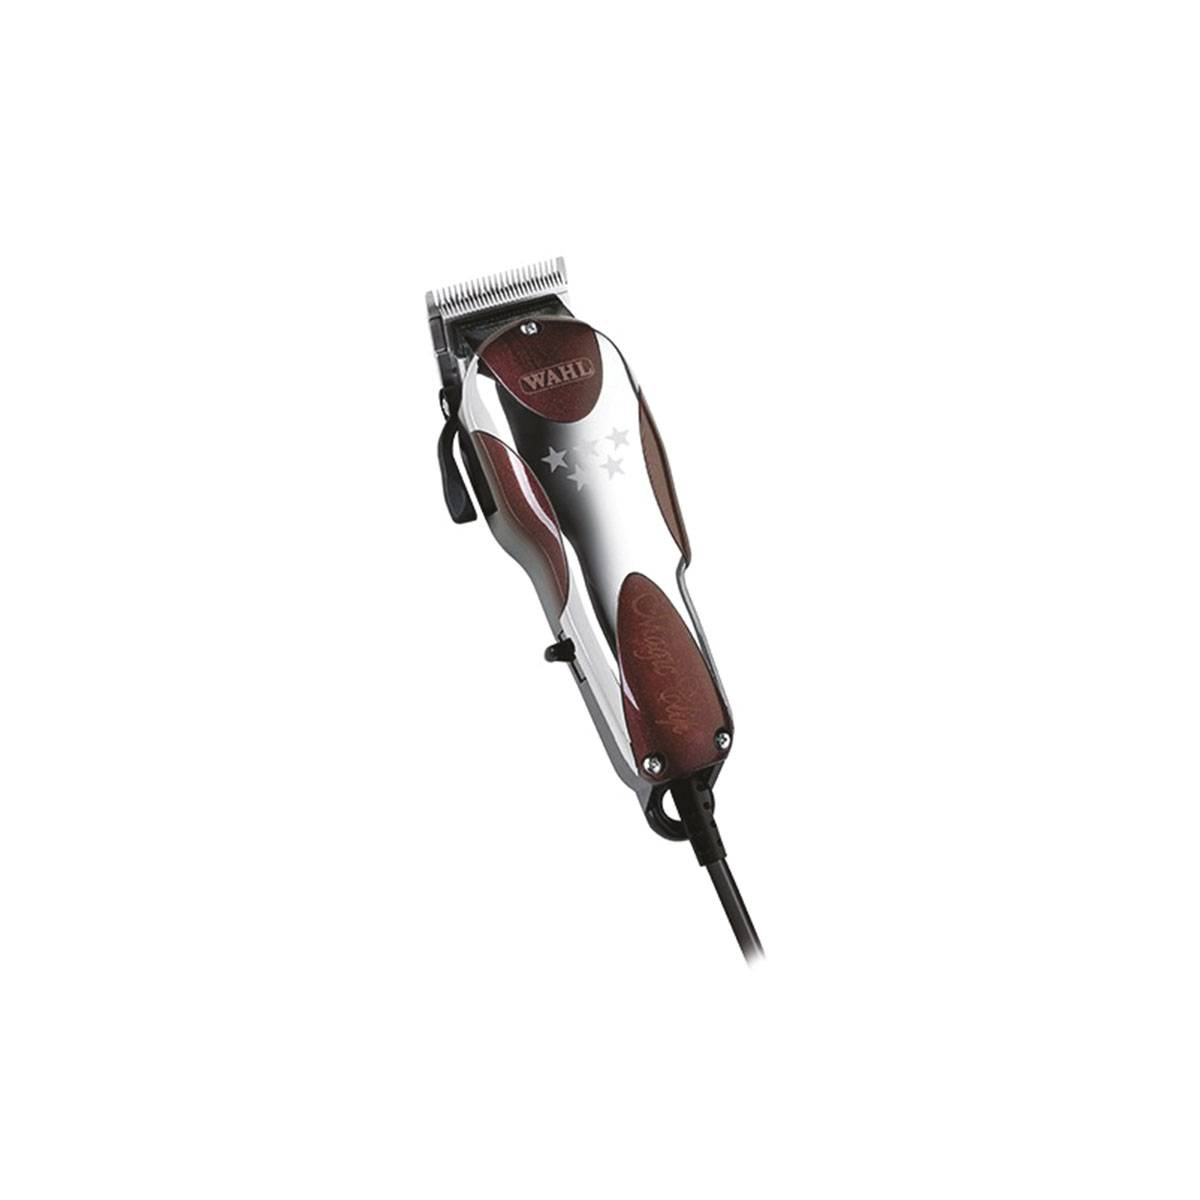 Tosatrice Magic Clip   Wahl- 5 Star**